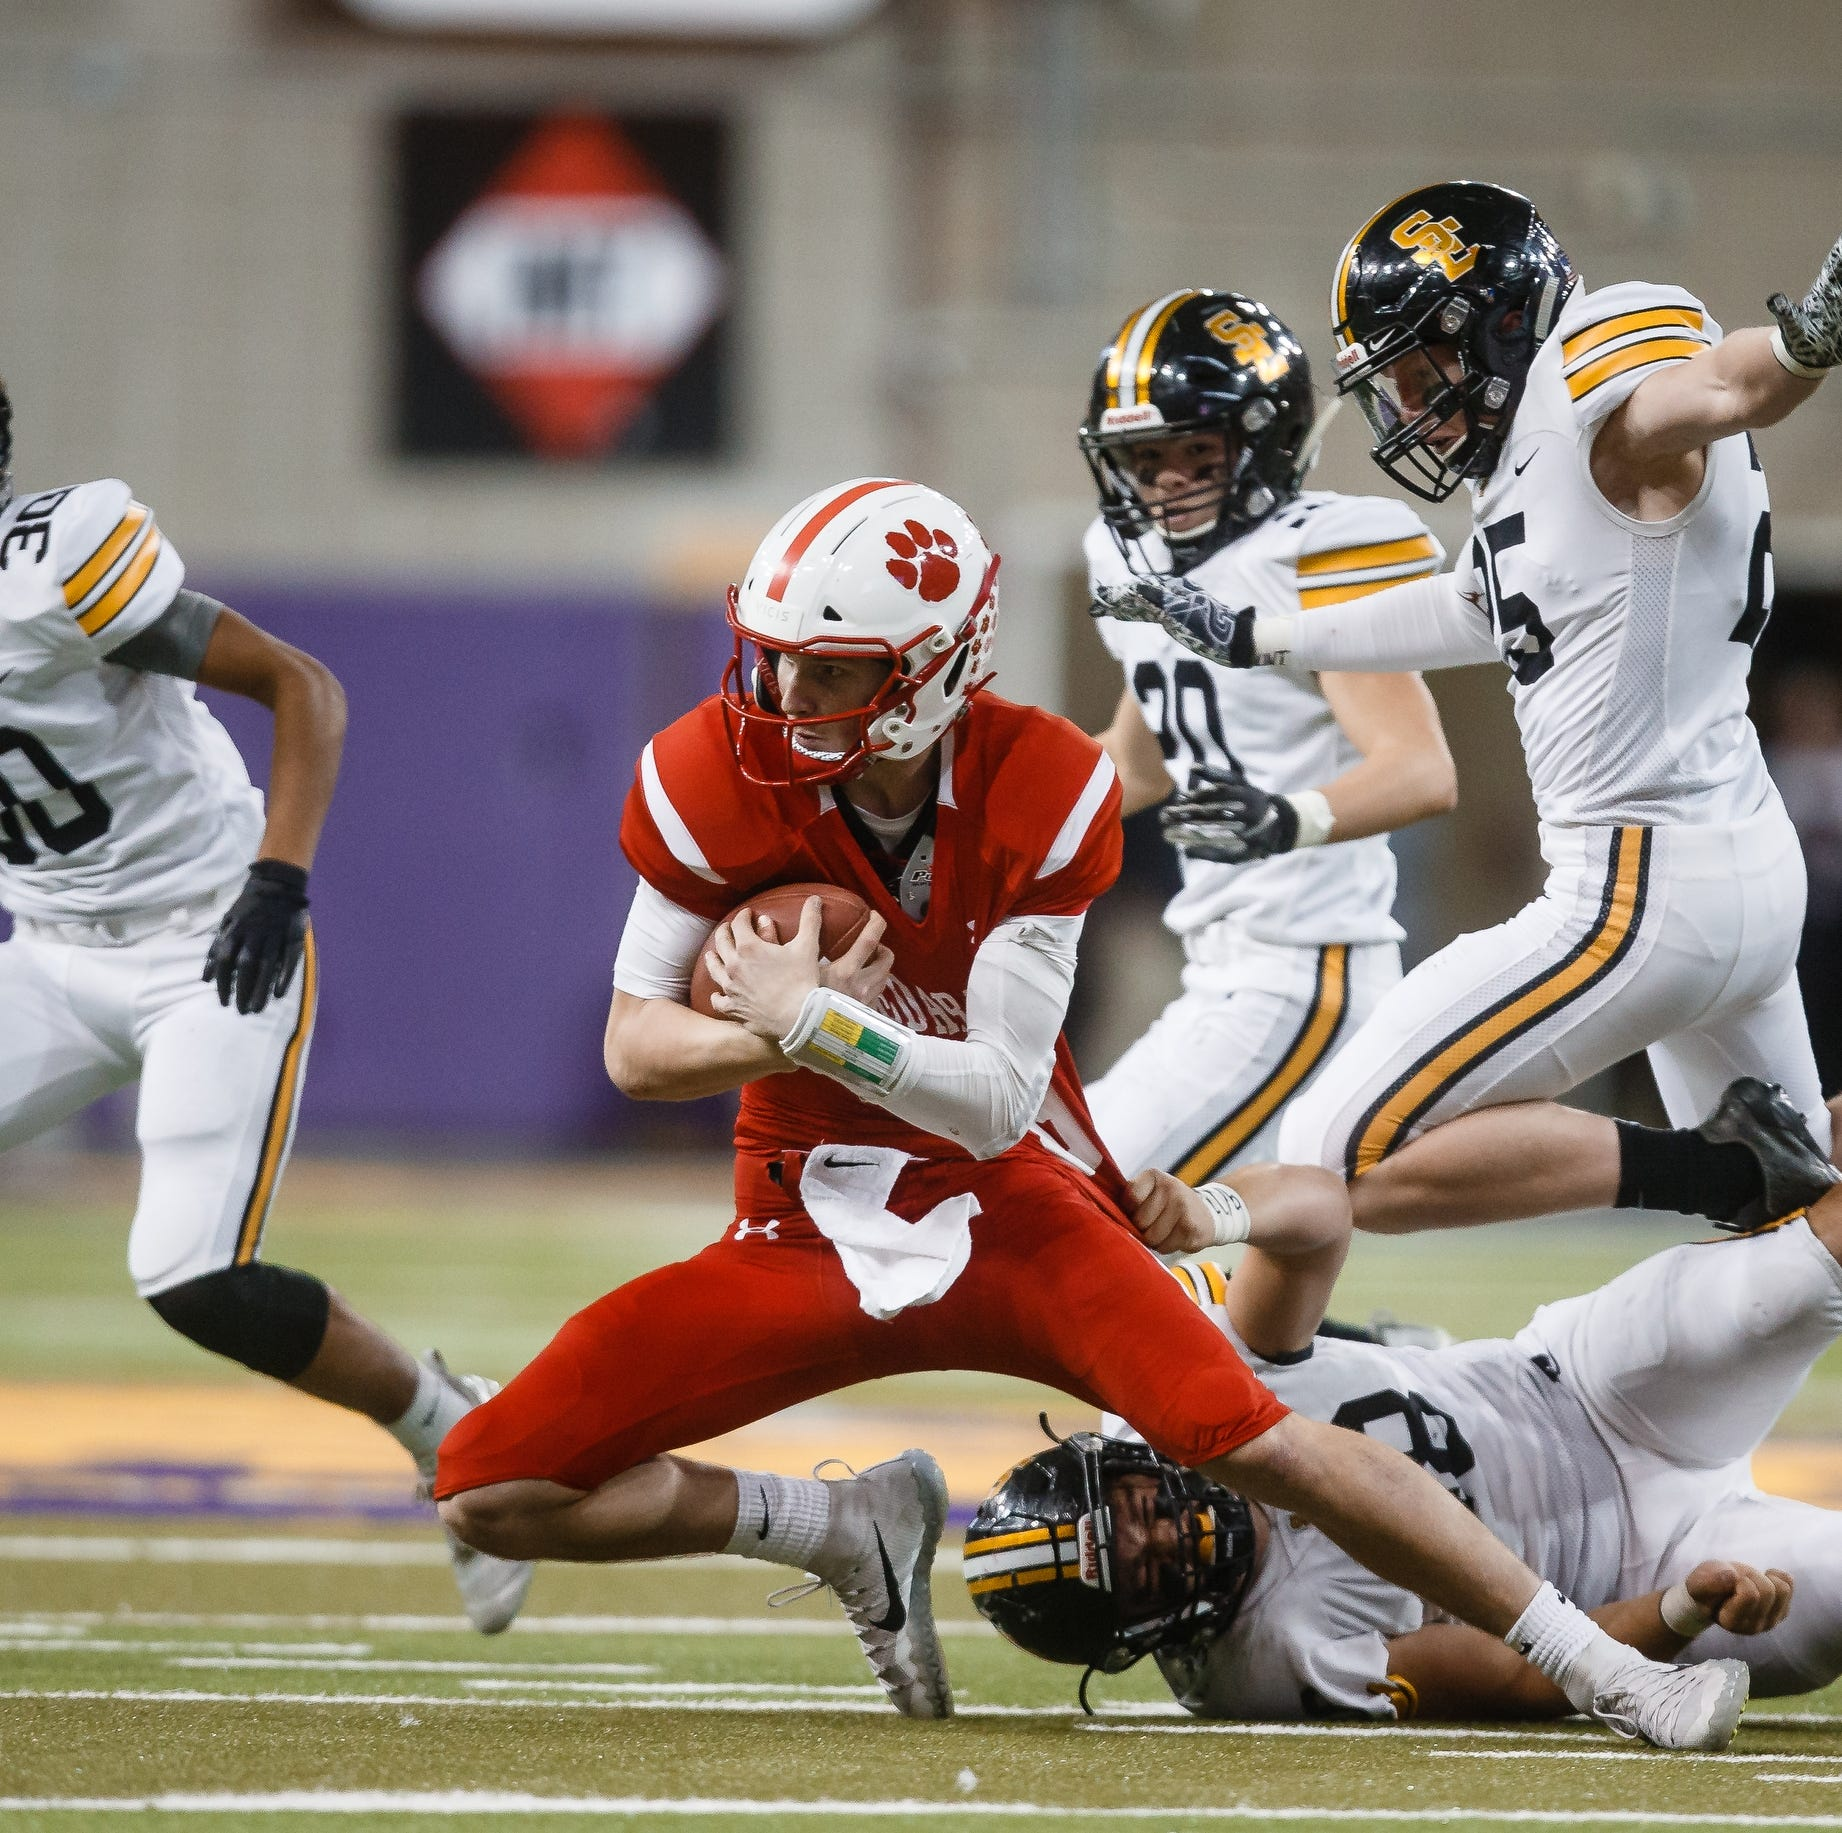 Iowa state football semifinals: Southeast Polk's playoff magic runs out against Cedar Falls